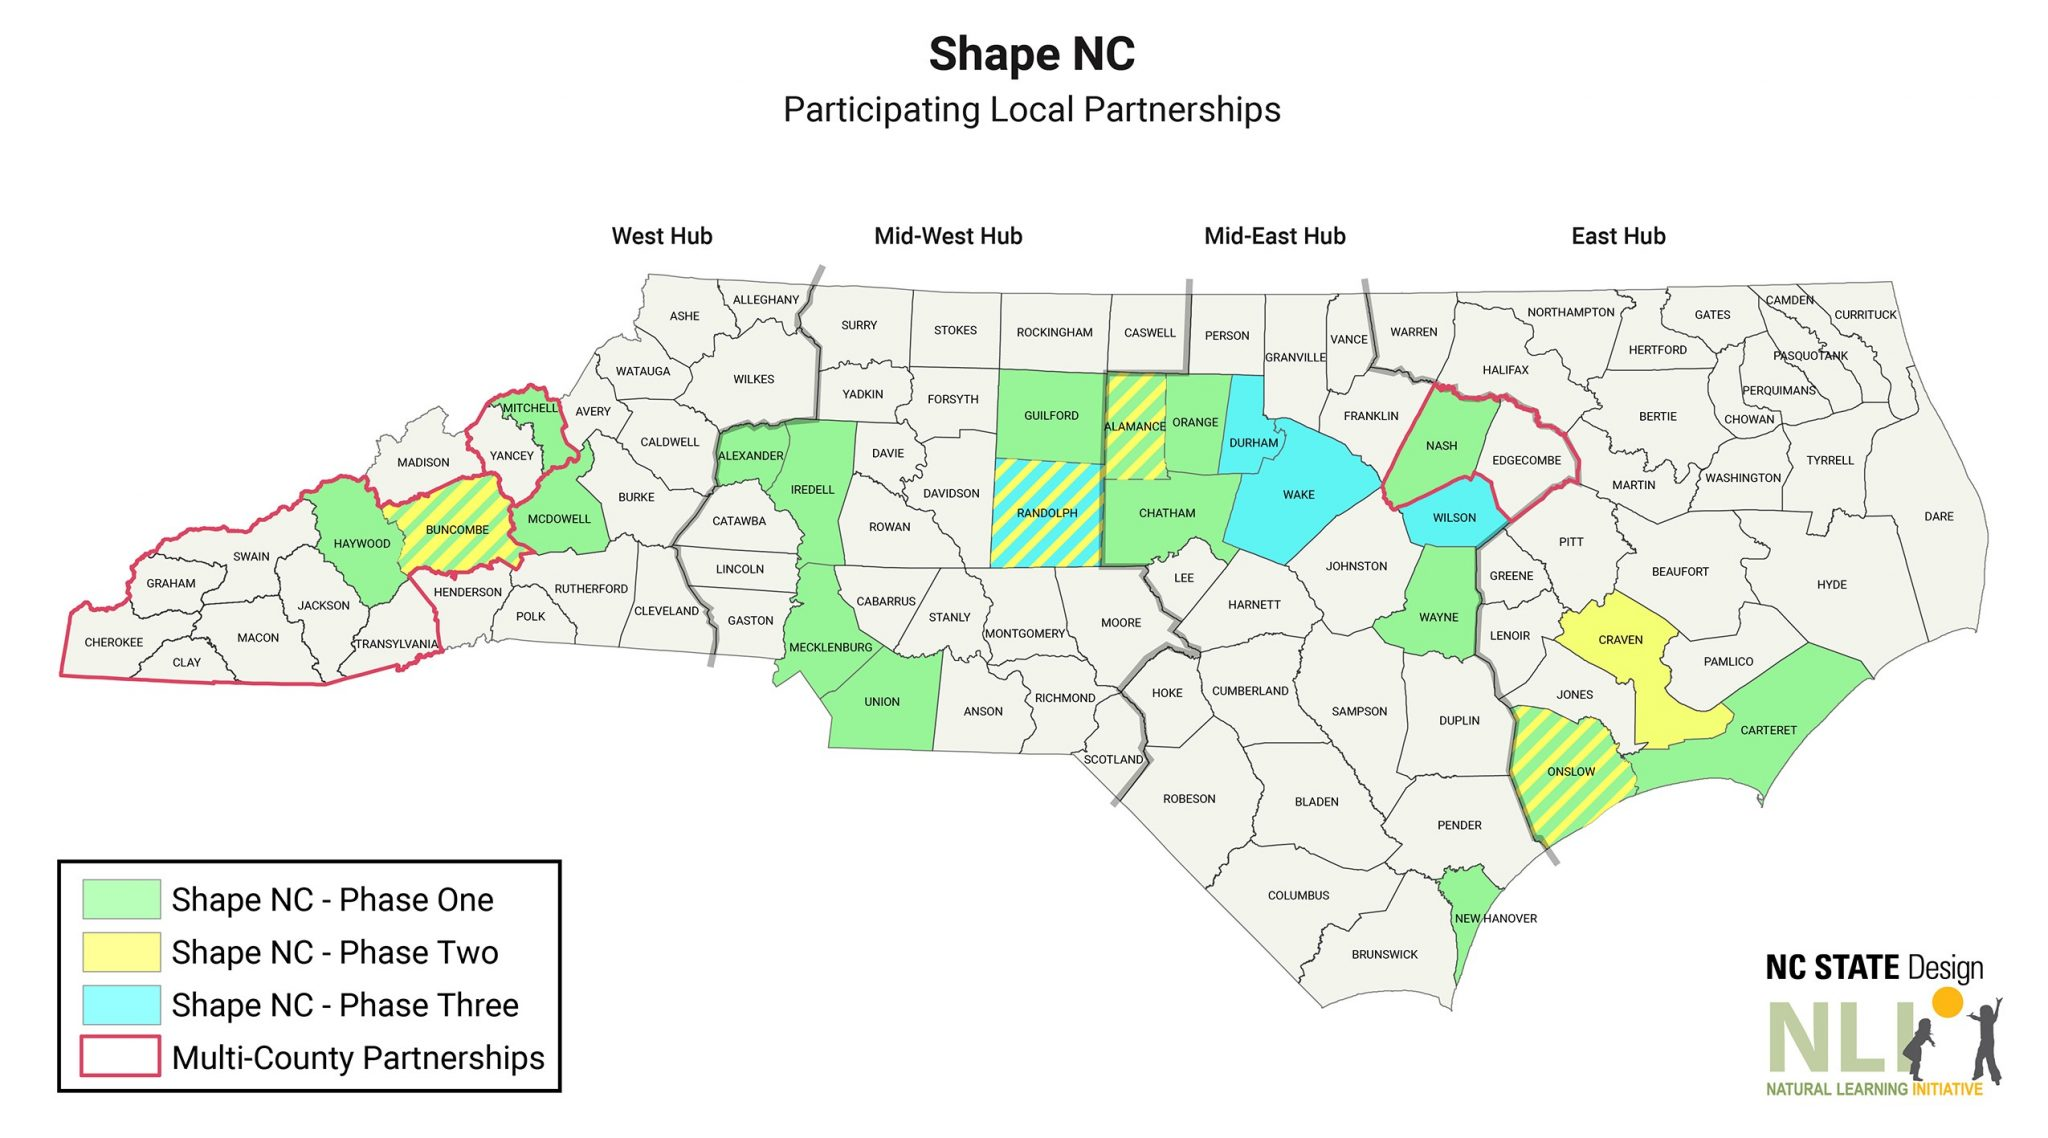 Shape NC Project Site Locations